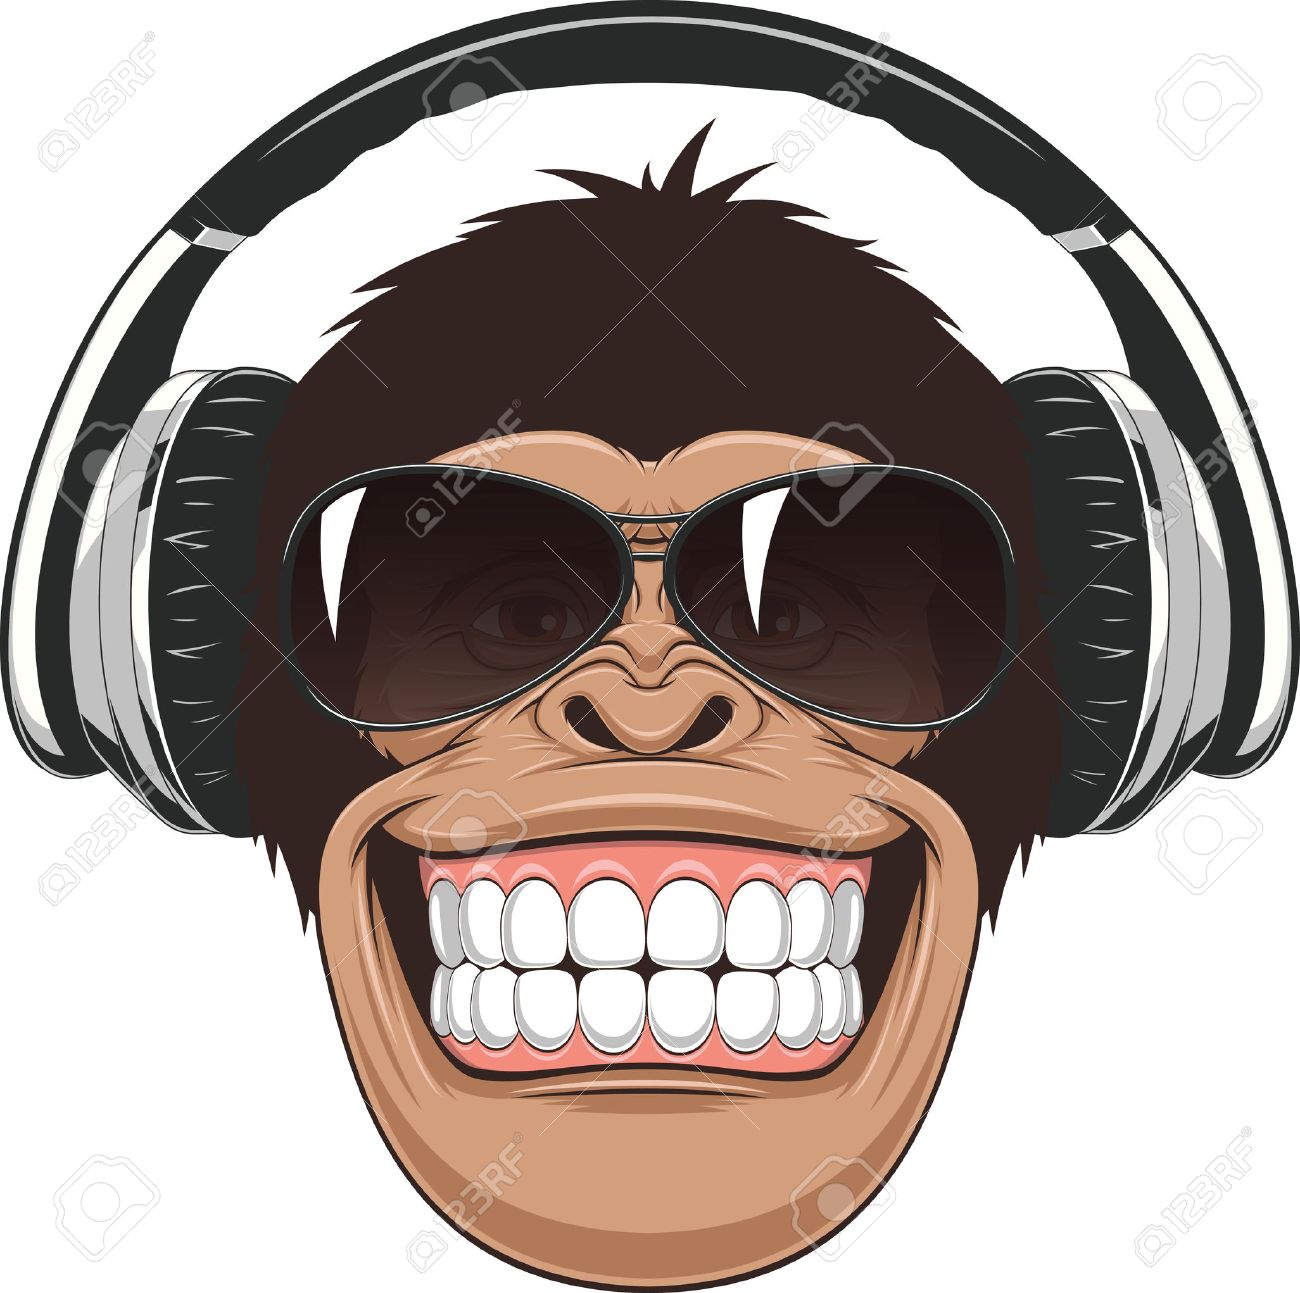 Vectorial illustration,funny chimpanzee in colored glasses and headphones - 42526185